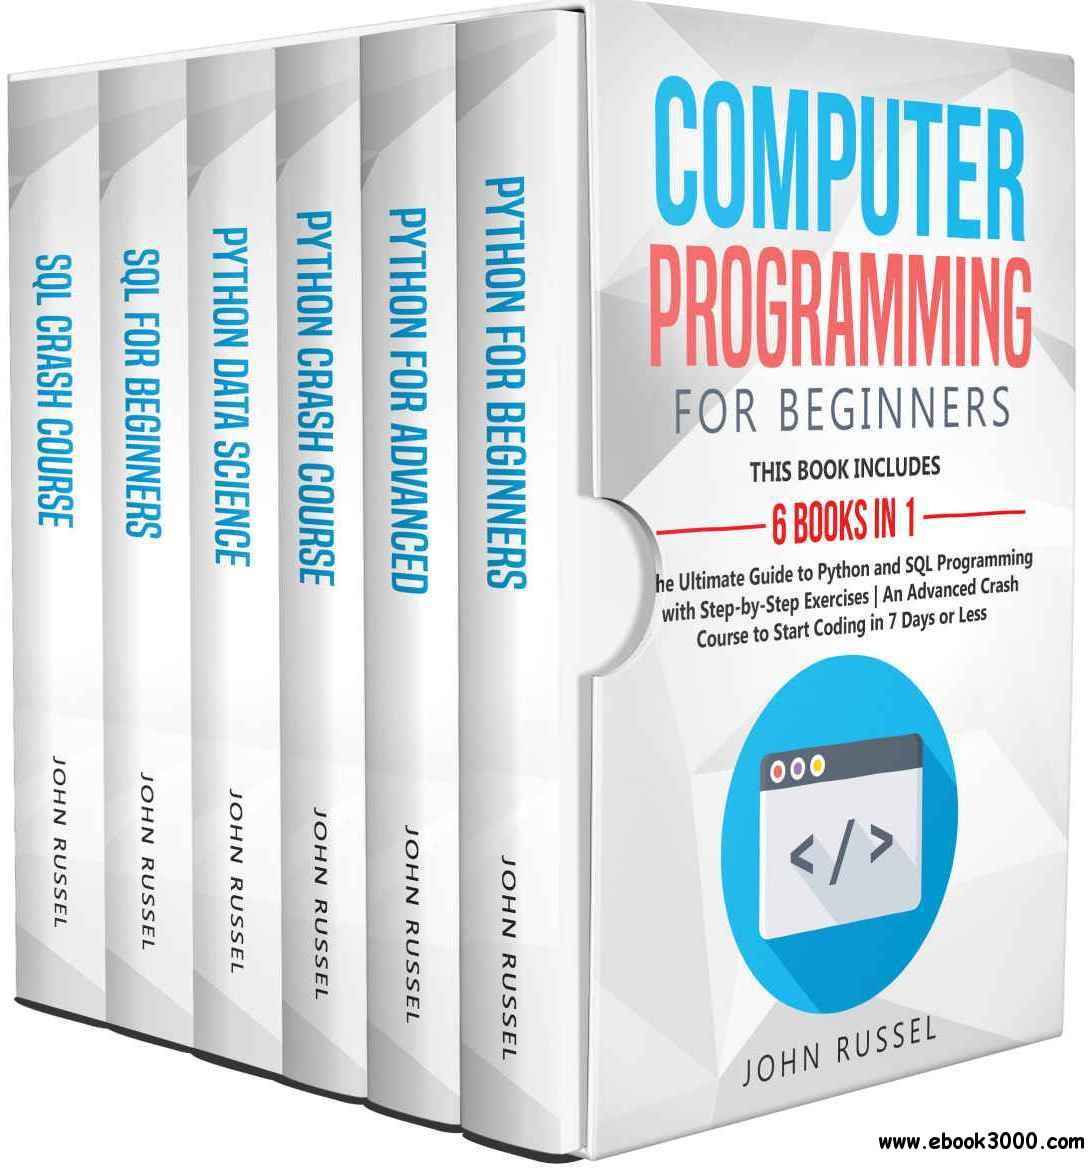 Computer Programming for Beginners: 6 Books in 1: The Ultimate Guide to Python and SQL Programming with Step-by-Step Exercises